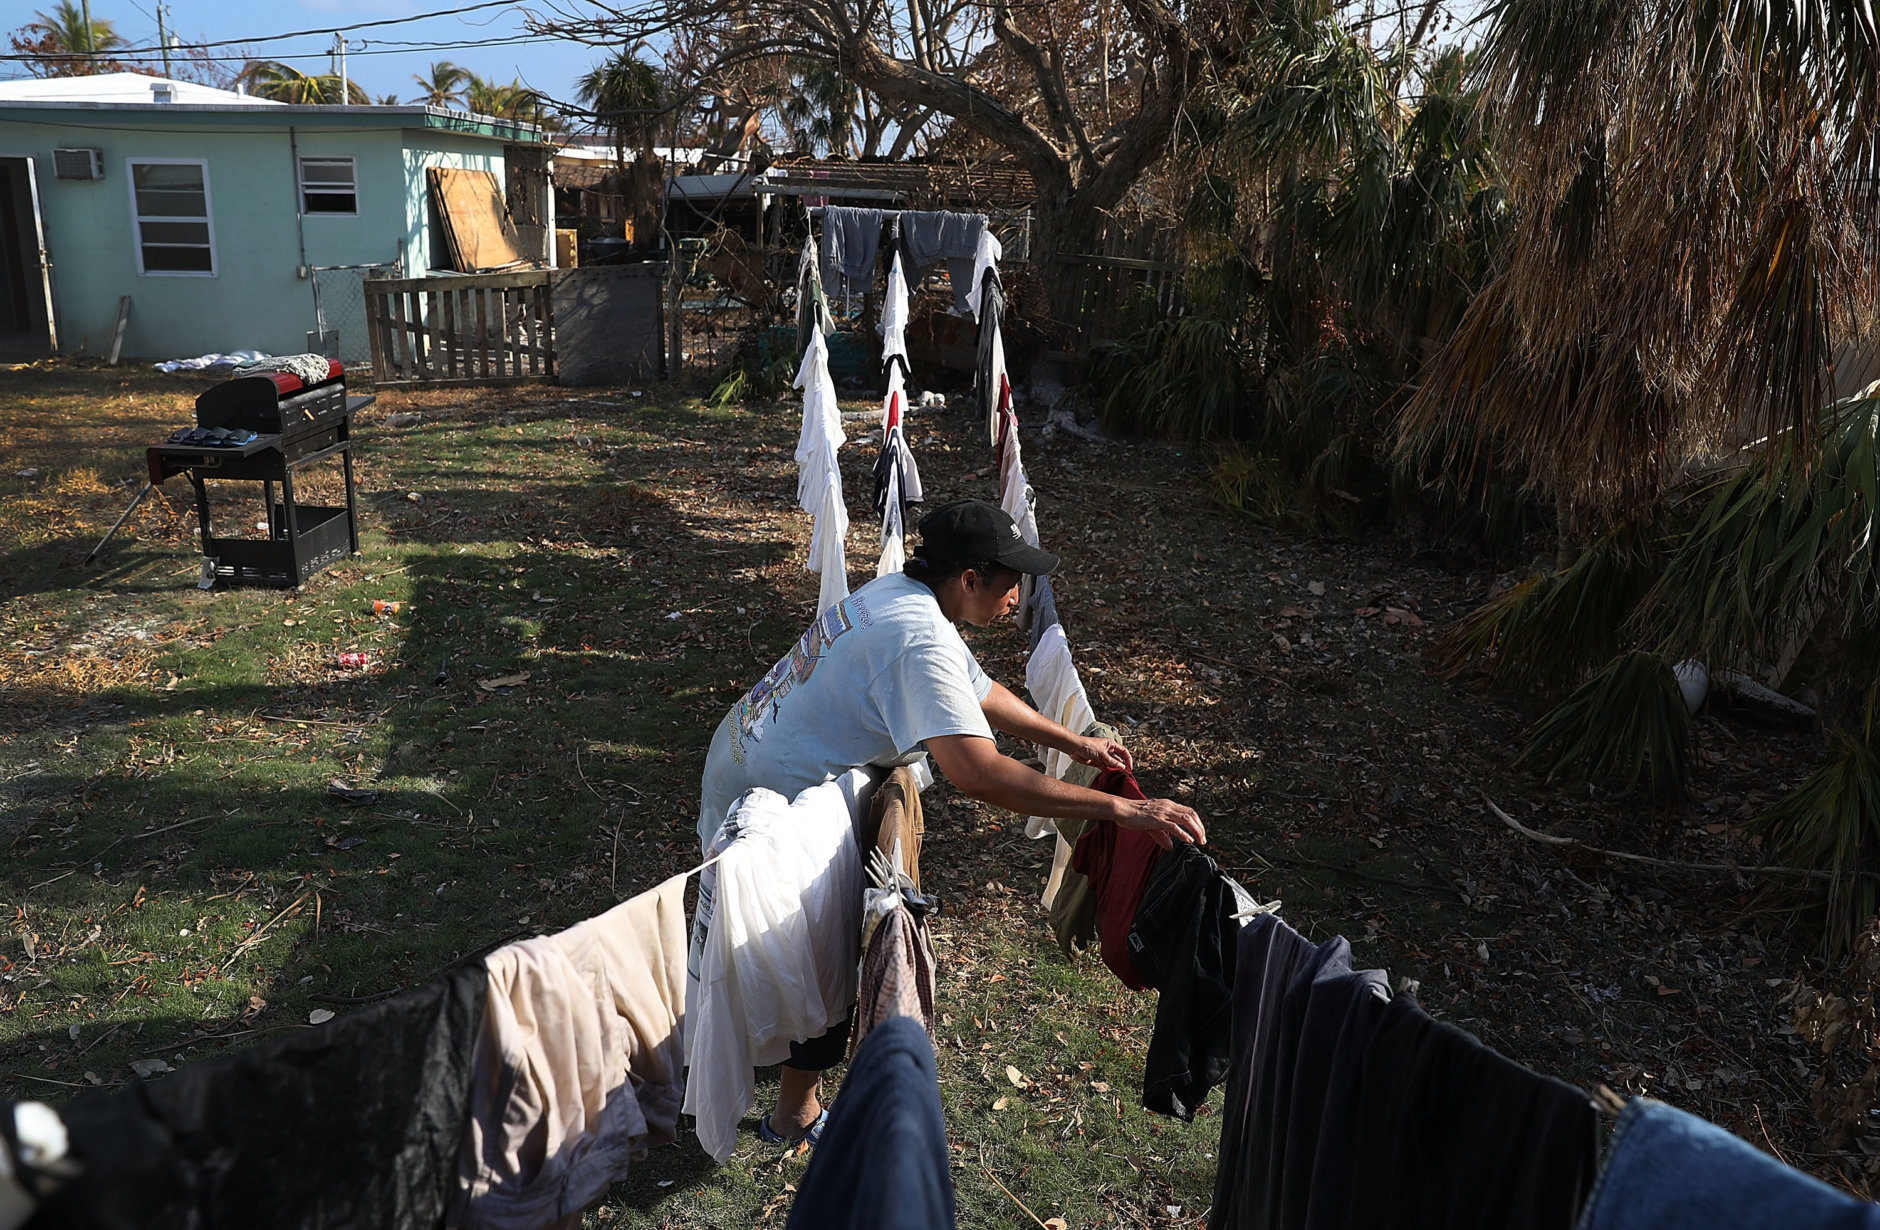 MARATHON, FL - SEPTEMBER 19:  Patricia Spencer hangs up laundry as she tries to salvage what she can from her home after it was damaged by hurricane Irma on September 19, 2017 in Marathon, Florida.  The process of rebuilding has begun as the Federal Emergency Management Agency has reported that 25-percent of all homes in the Florida Keys were destroyed and 65-percent sustained major damage when they took a direct hit from Hurricane Irma.  (Photo by Joe Raedle/Getty Images)